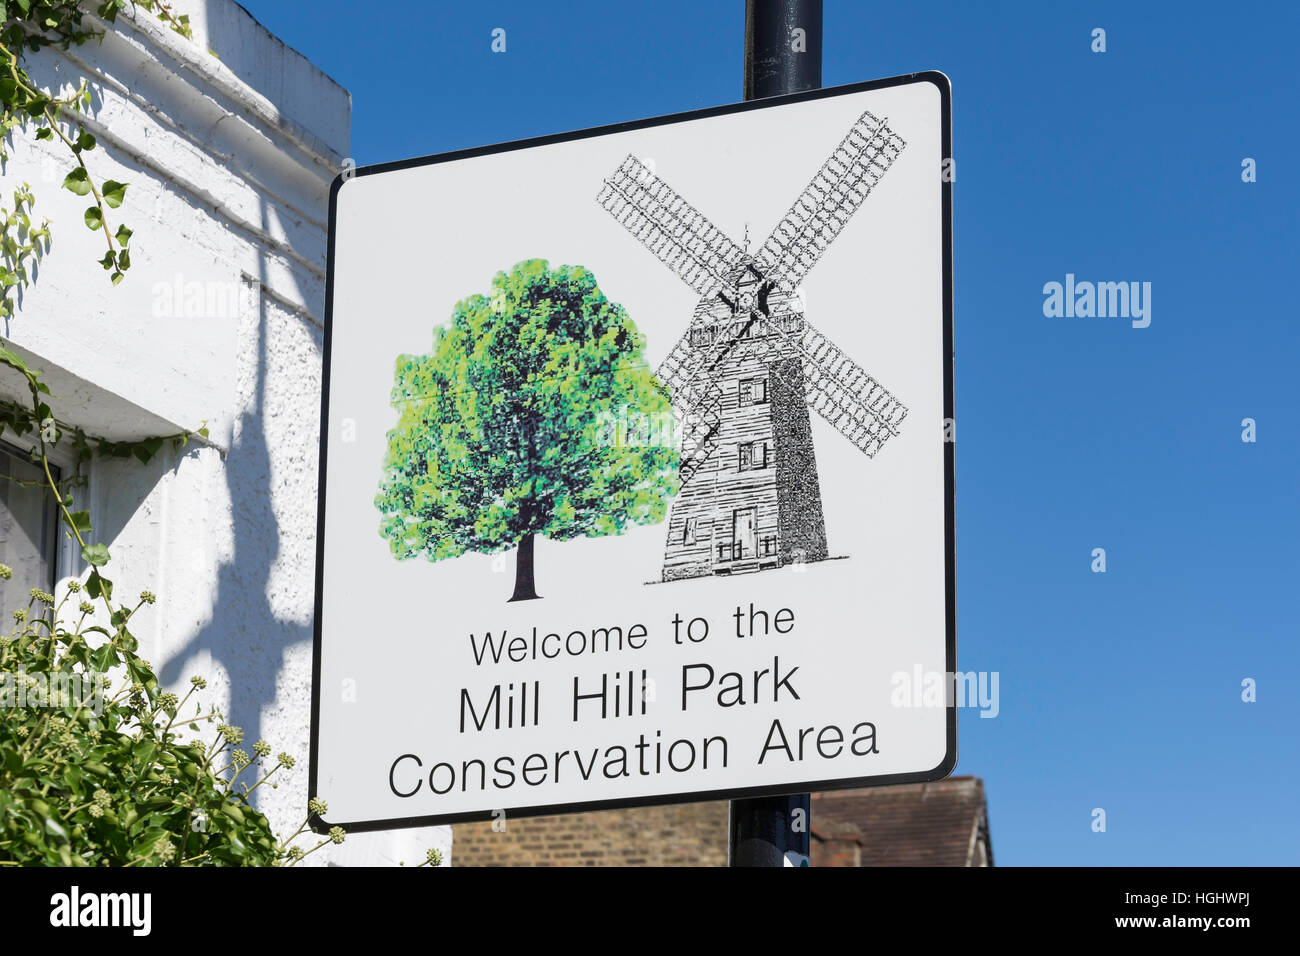 Mill Hill Conservation Area sign, Gunnersbury Lane, Acton, London Borough of Ealing, Greater London, Angleterre, Photo Stock